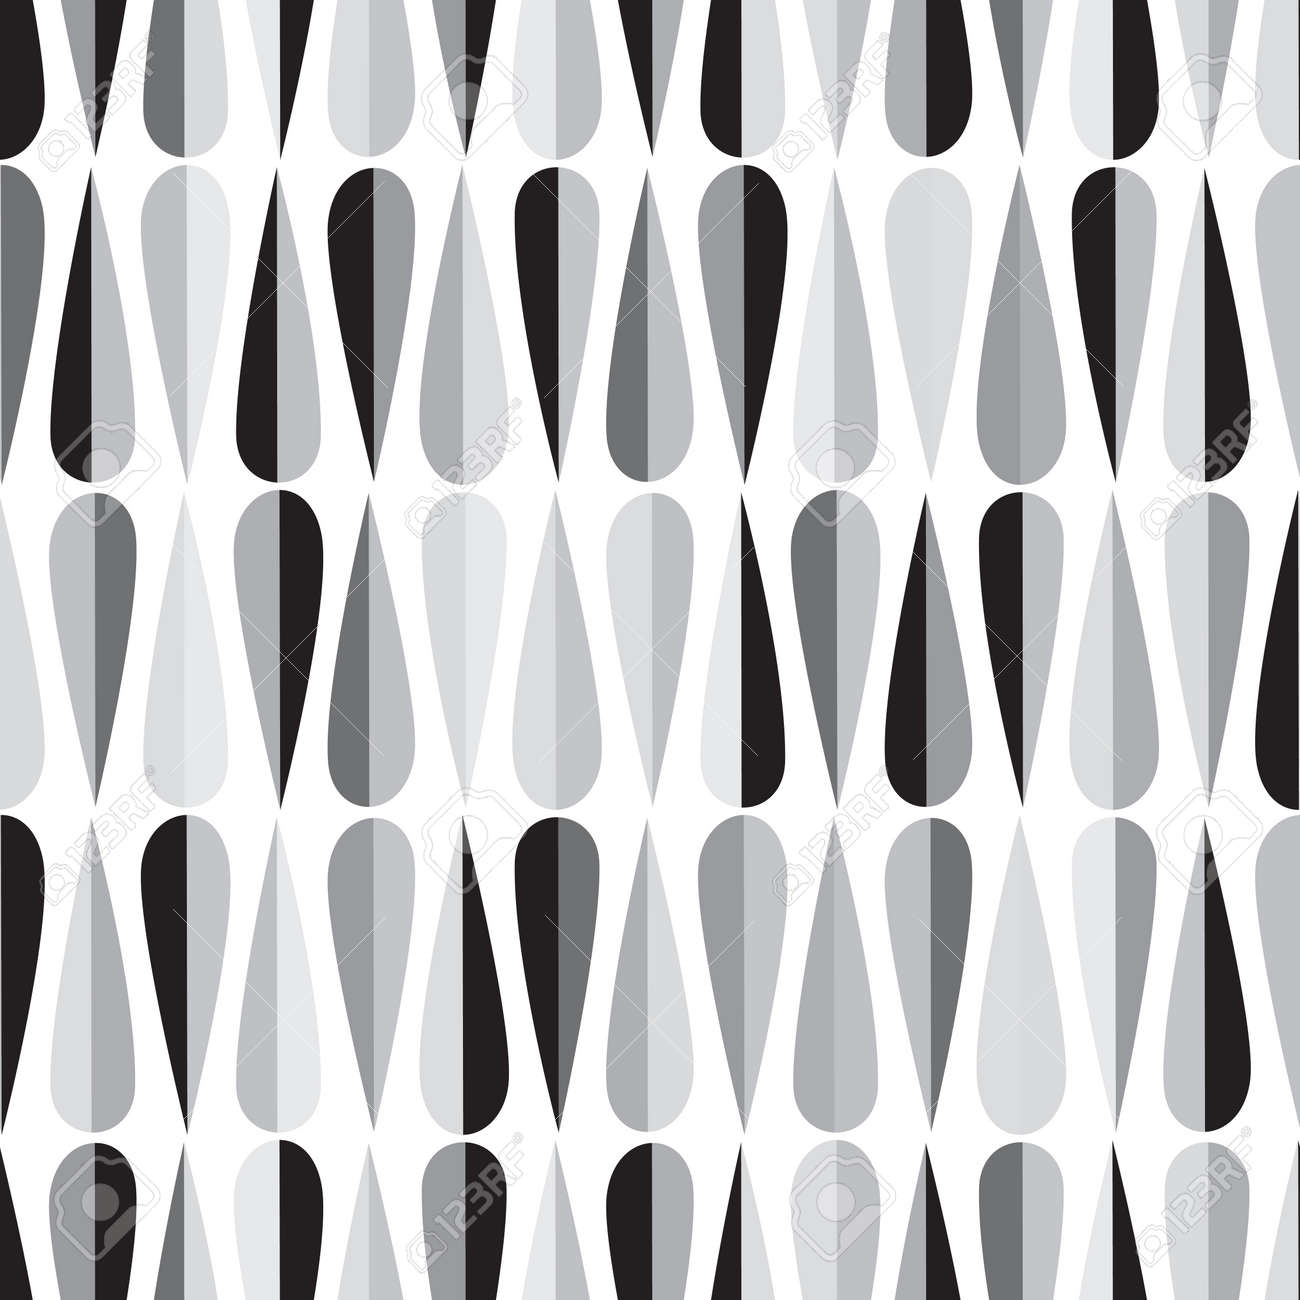 Mid Century Modern Style Retro Seamless Pattern With Drop Shapes In Shades Of Gray